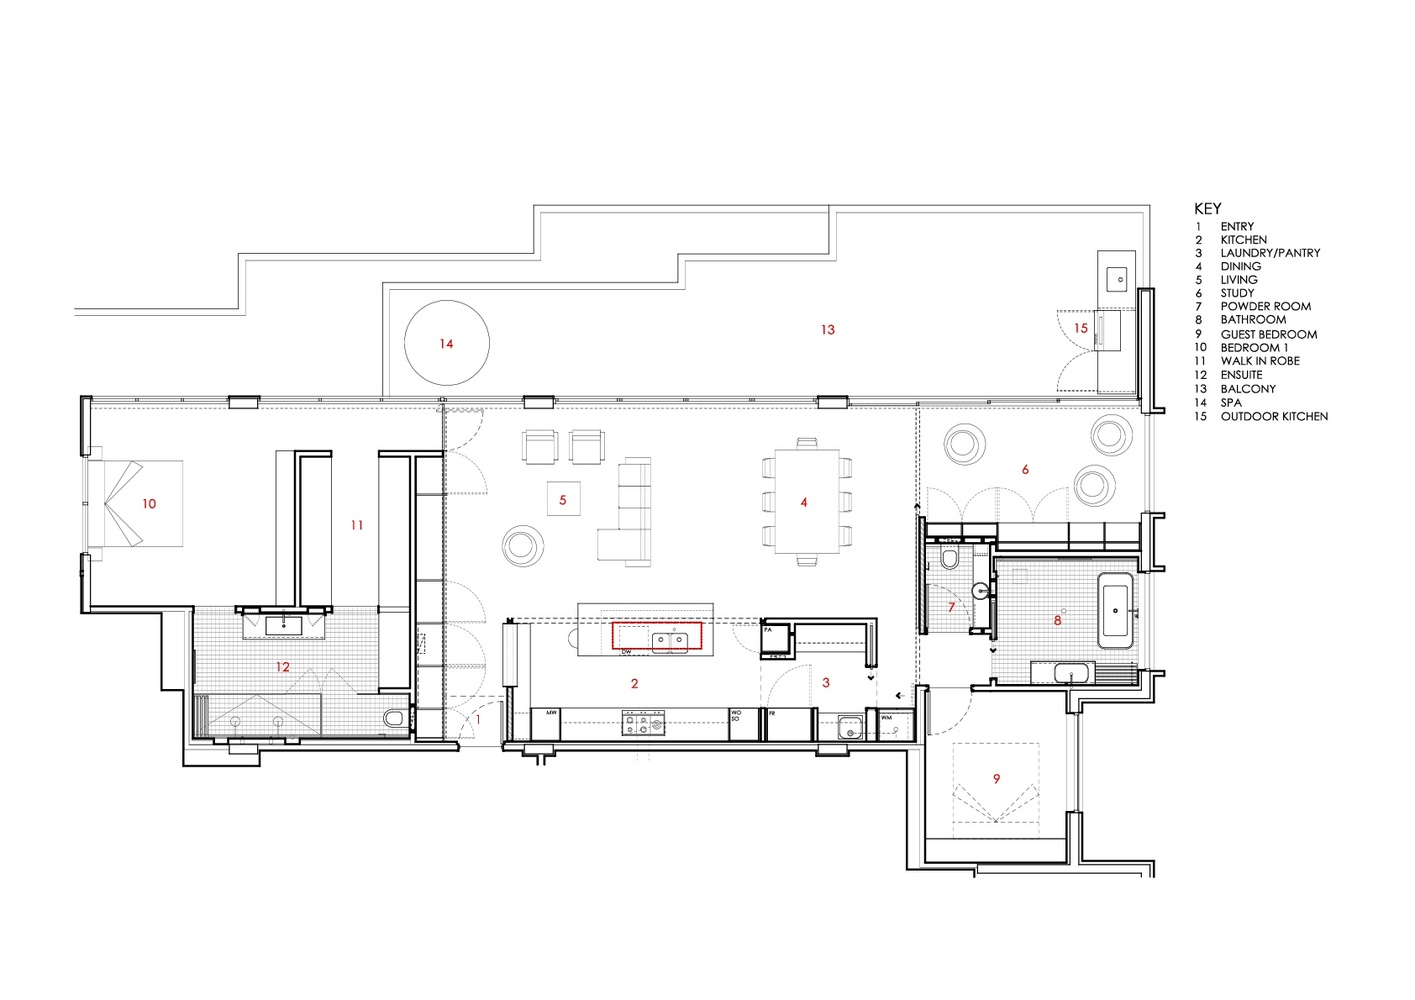 Gallery of TJ House / Ben Walker Architects - 12 on dunphy house floor plan, stimson house floor plan, duggar house floor plan, borden house floor plan, hoke house floor plan, sowden house floor plan, cullen house floor plan, bates house floor plan, osborne house floor plan, brady house floor plan, huxtable house floor plan, walsh house floor plan,